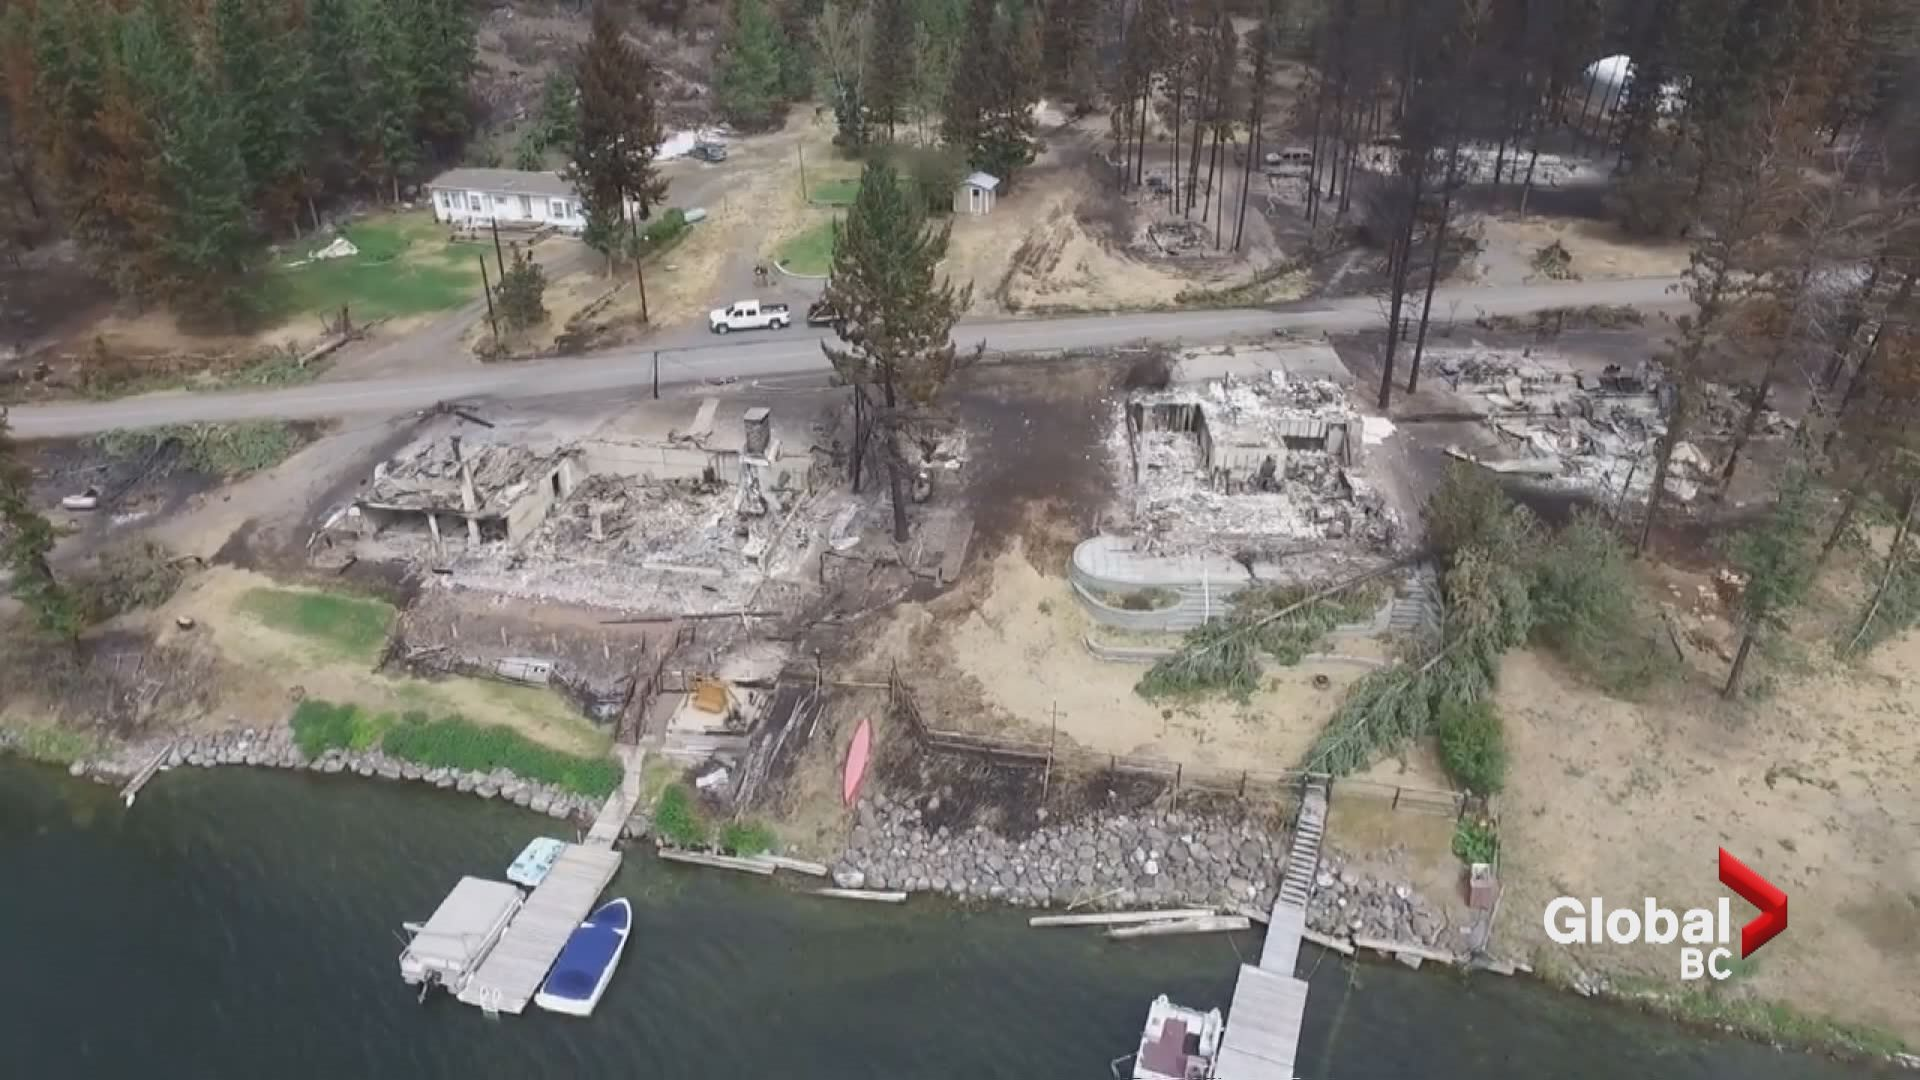 BC Wildfire continues, forces local people to flee